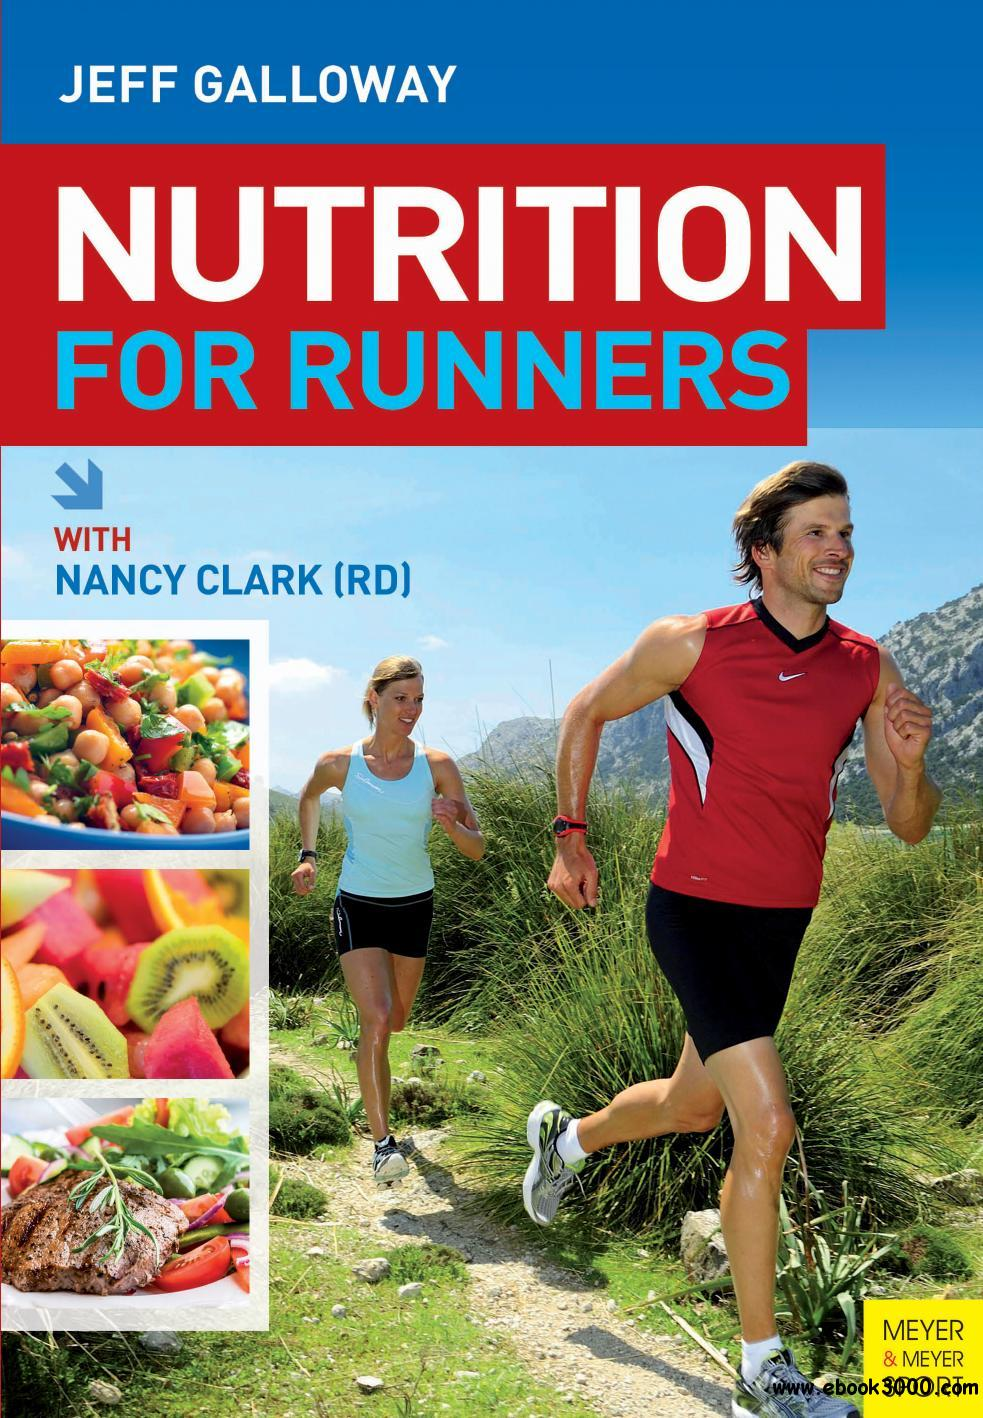 Nutrition for Runners download dree